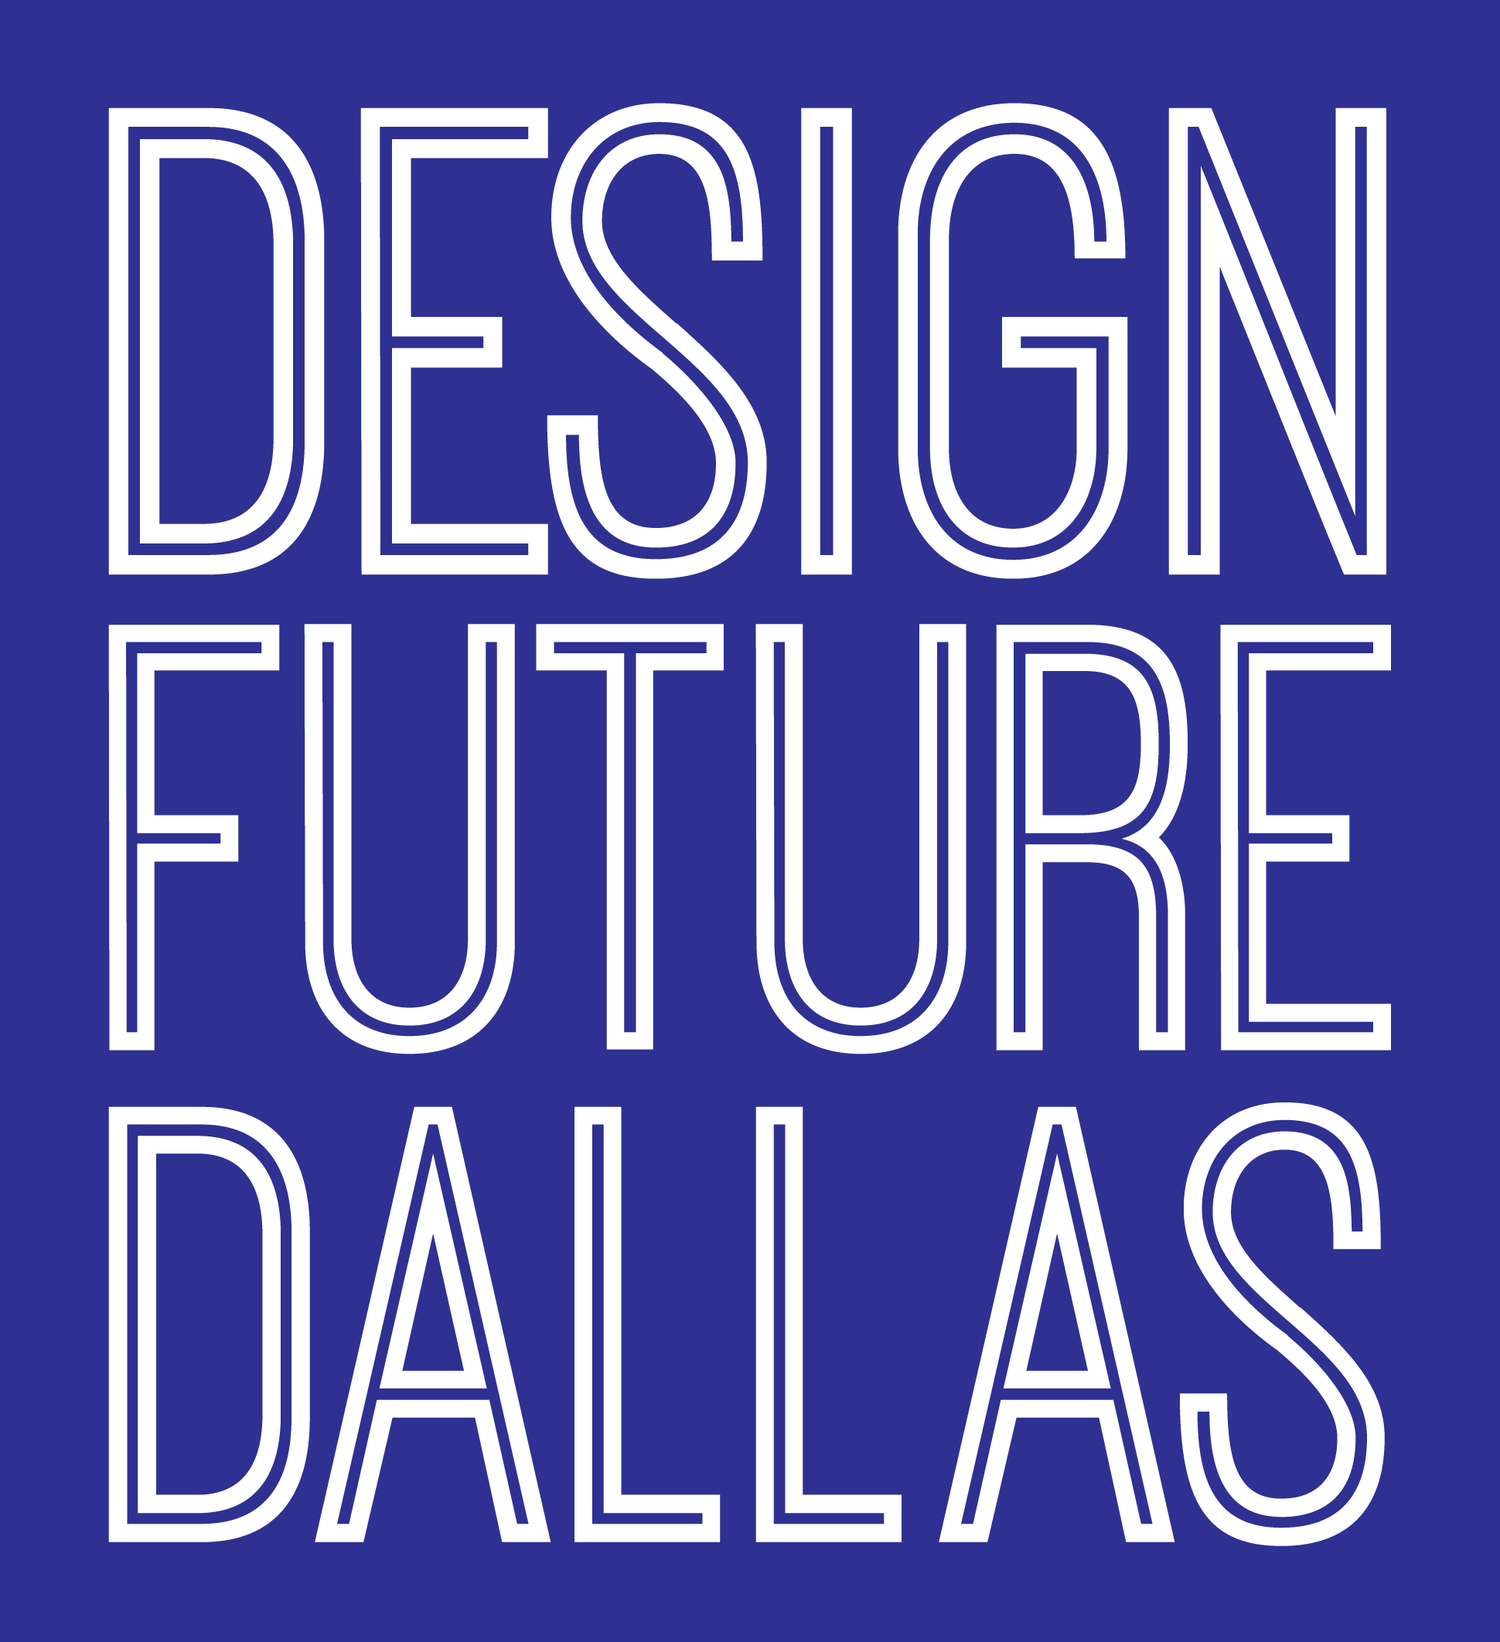 DESIGN FUTURE DALLAS